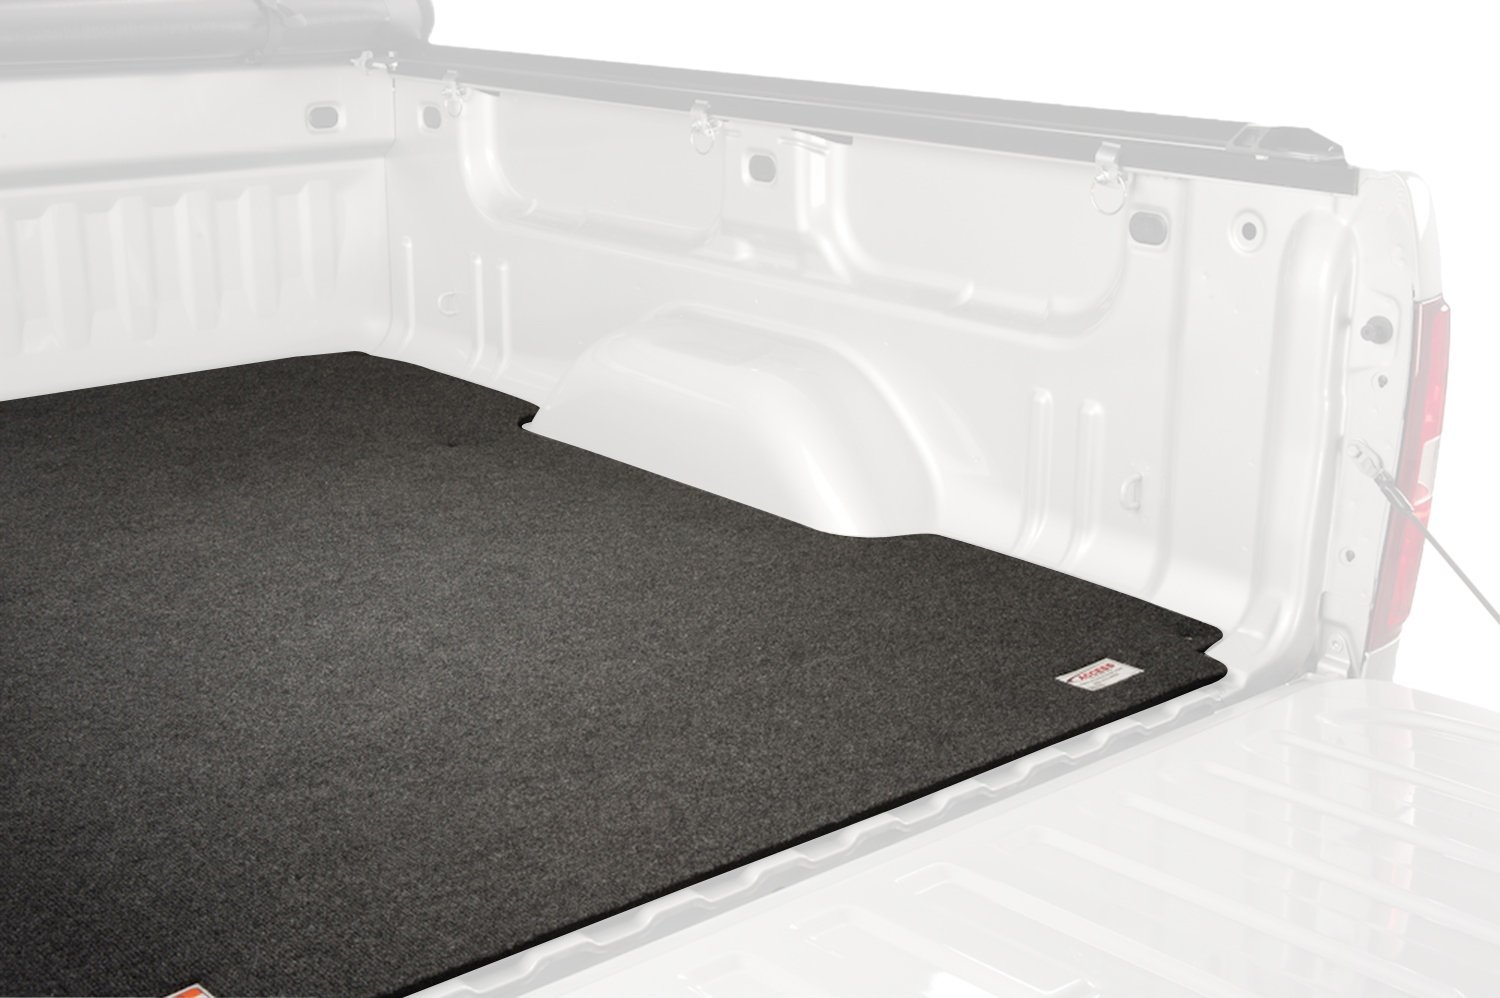 25010369 ACI/ AgriCover/ Access Cover Bed Mat Direct-Fit